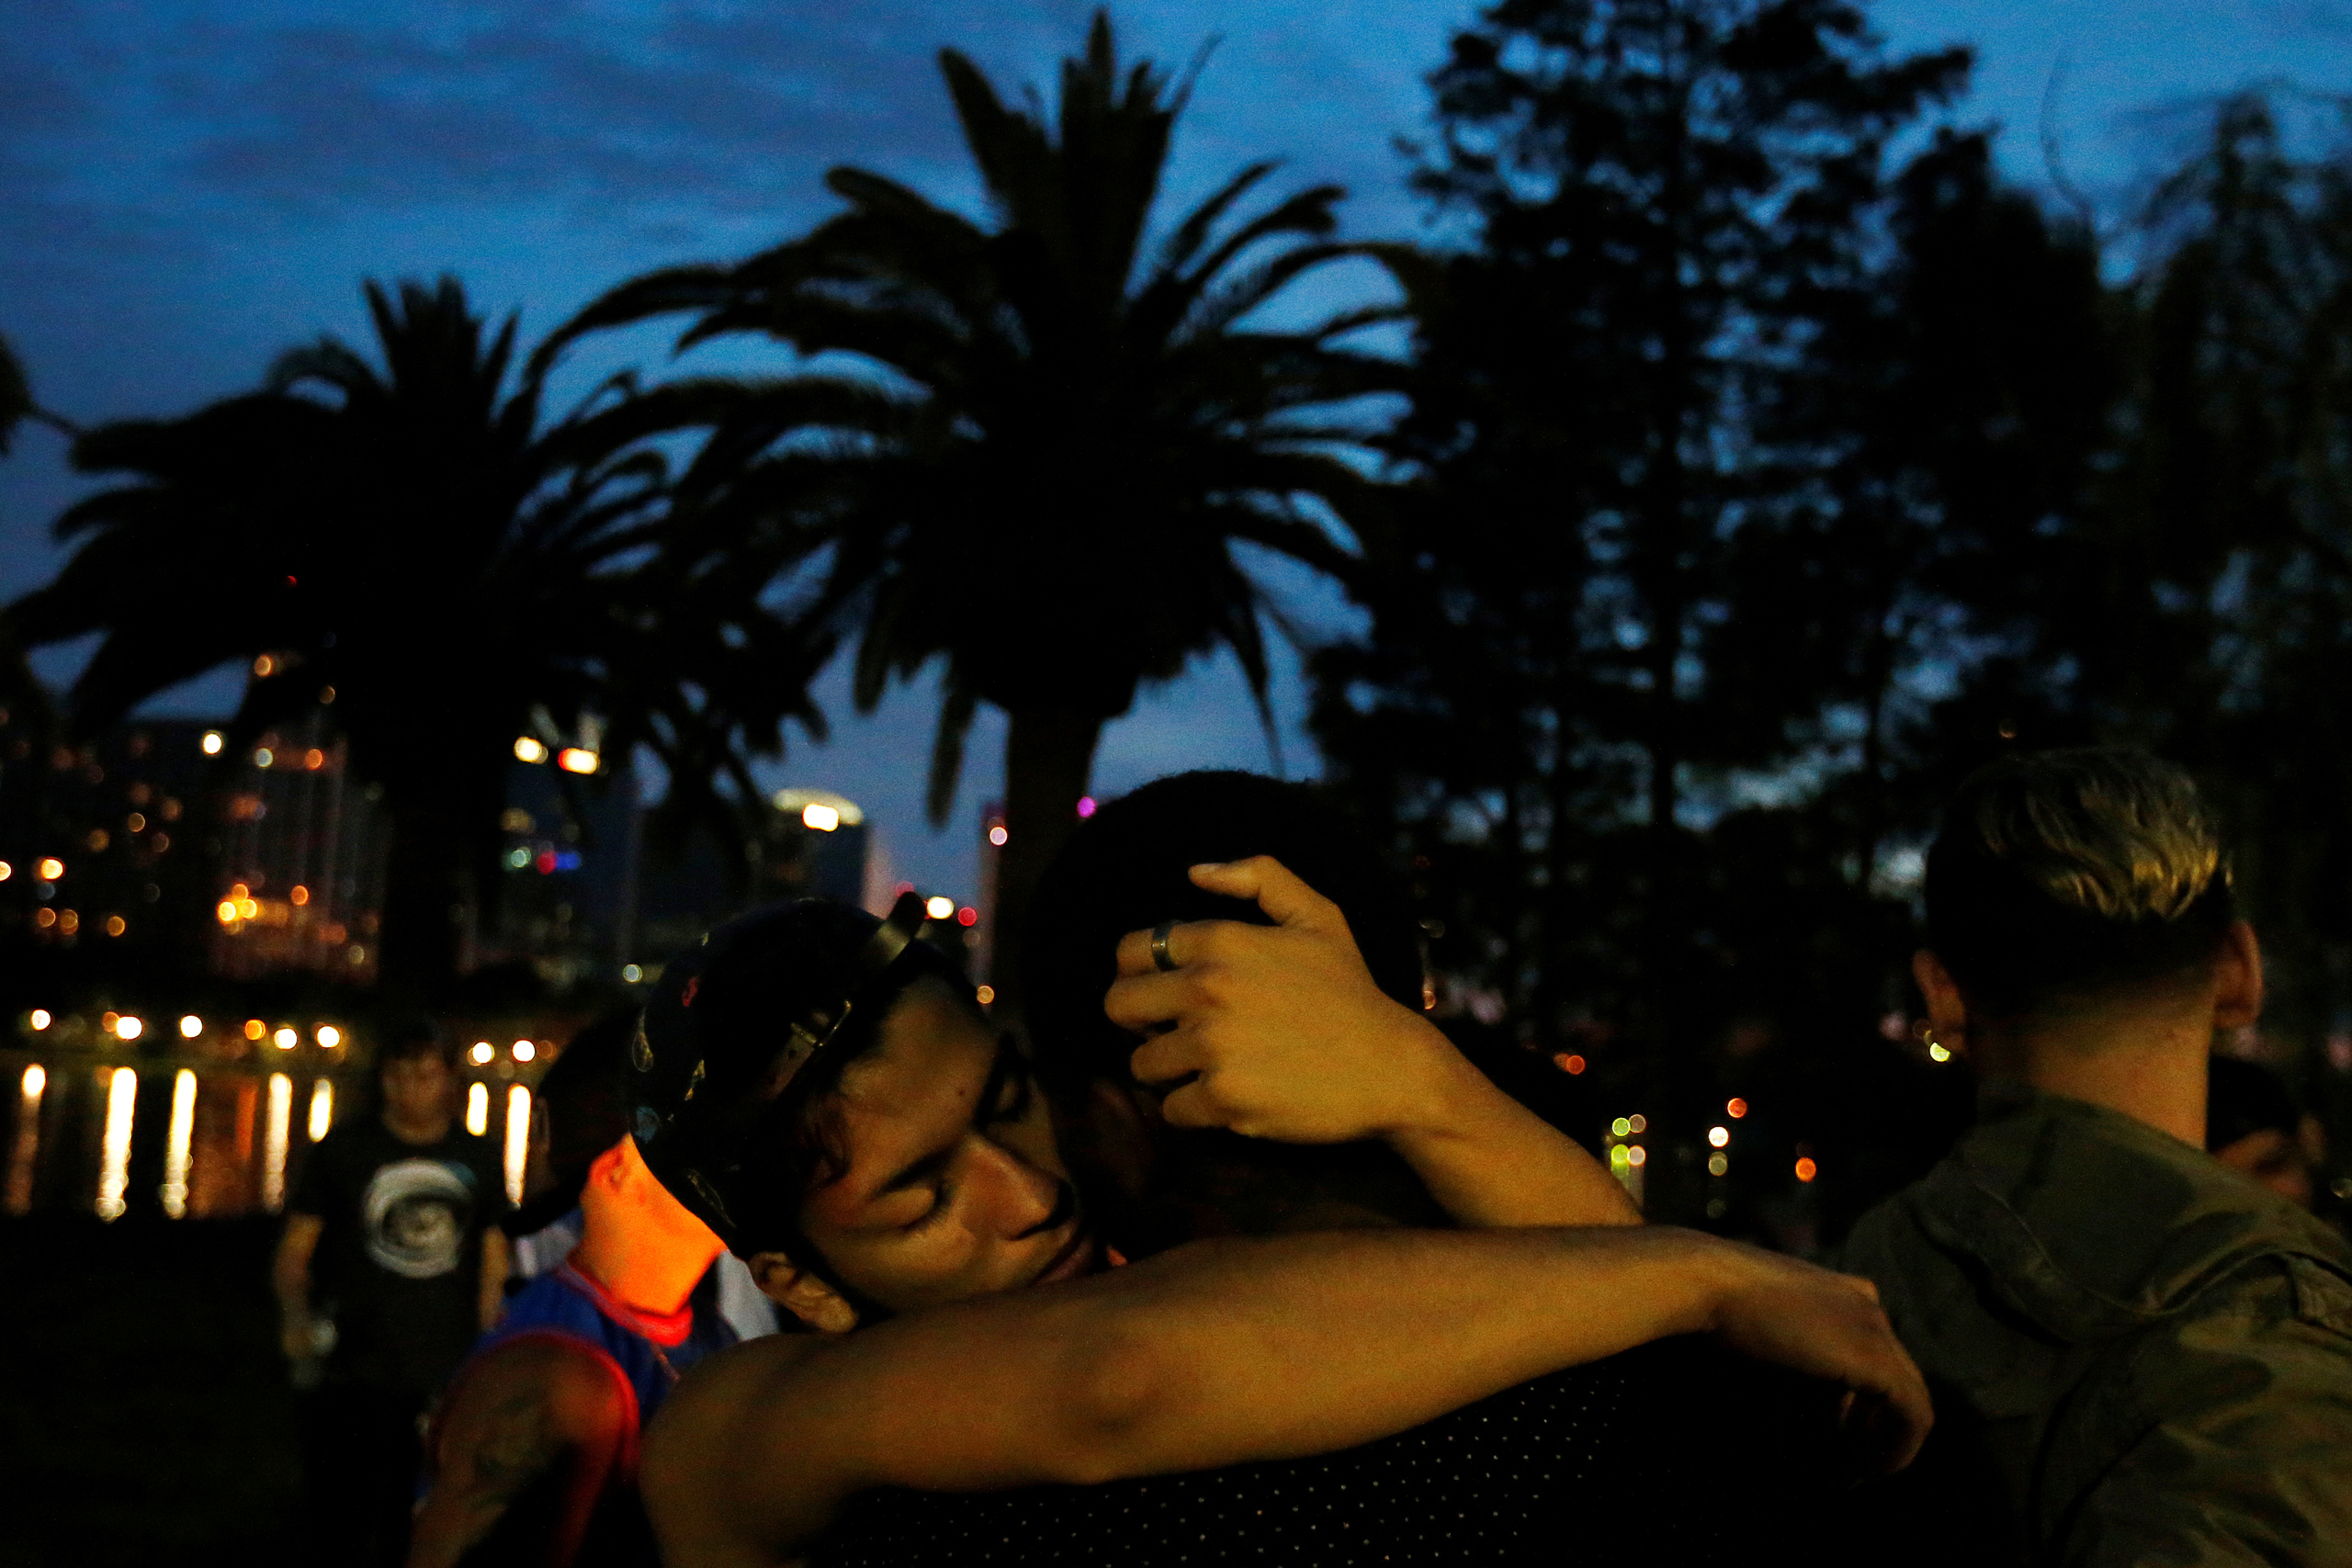 Men hug during a vigil in a park following a mass shooting at the Pulse gay nightclub in Orlando Fla., on June 12, 2016.